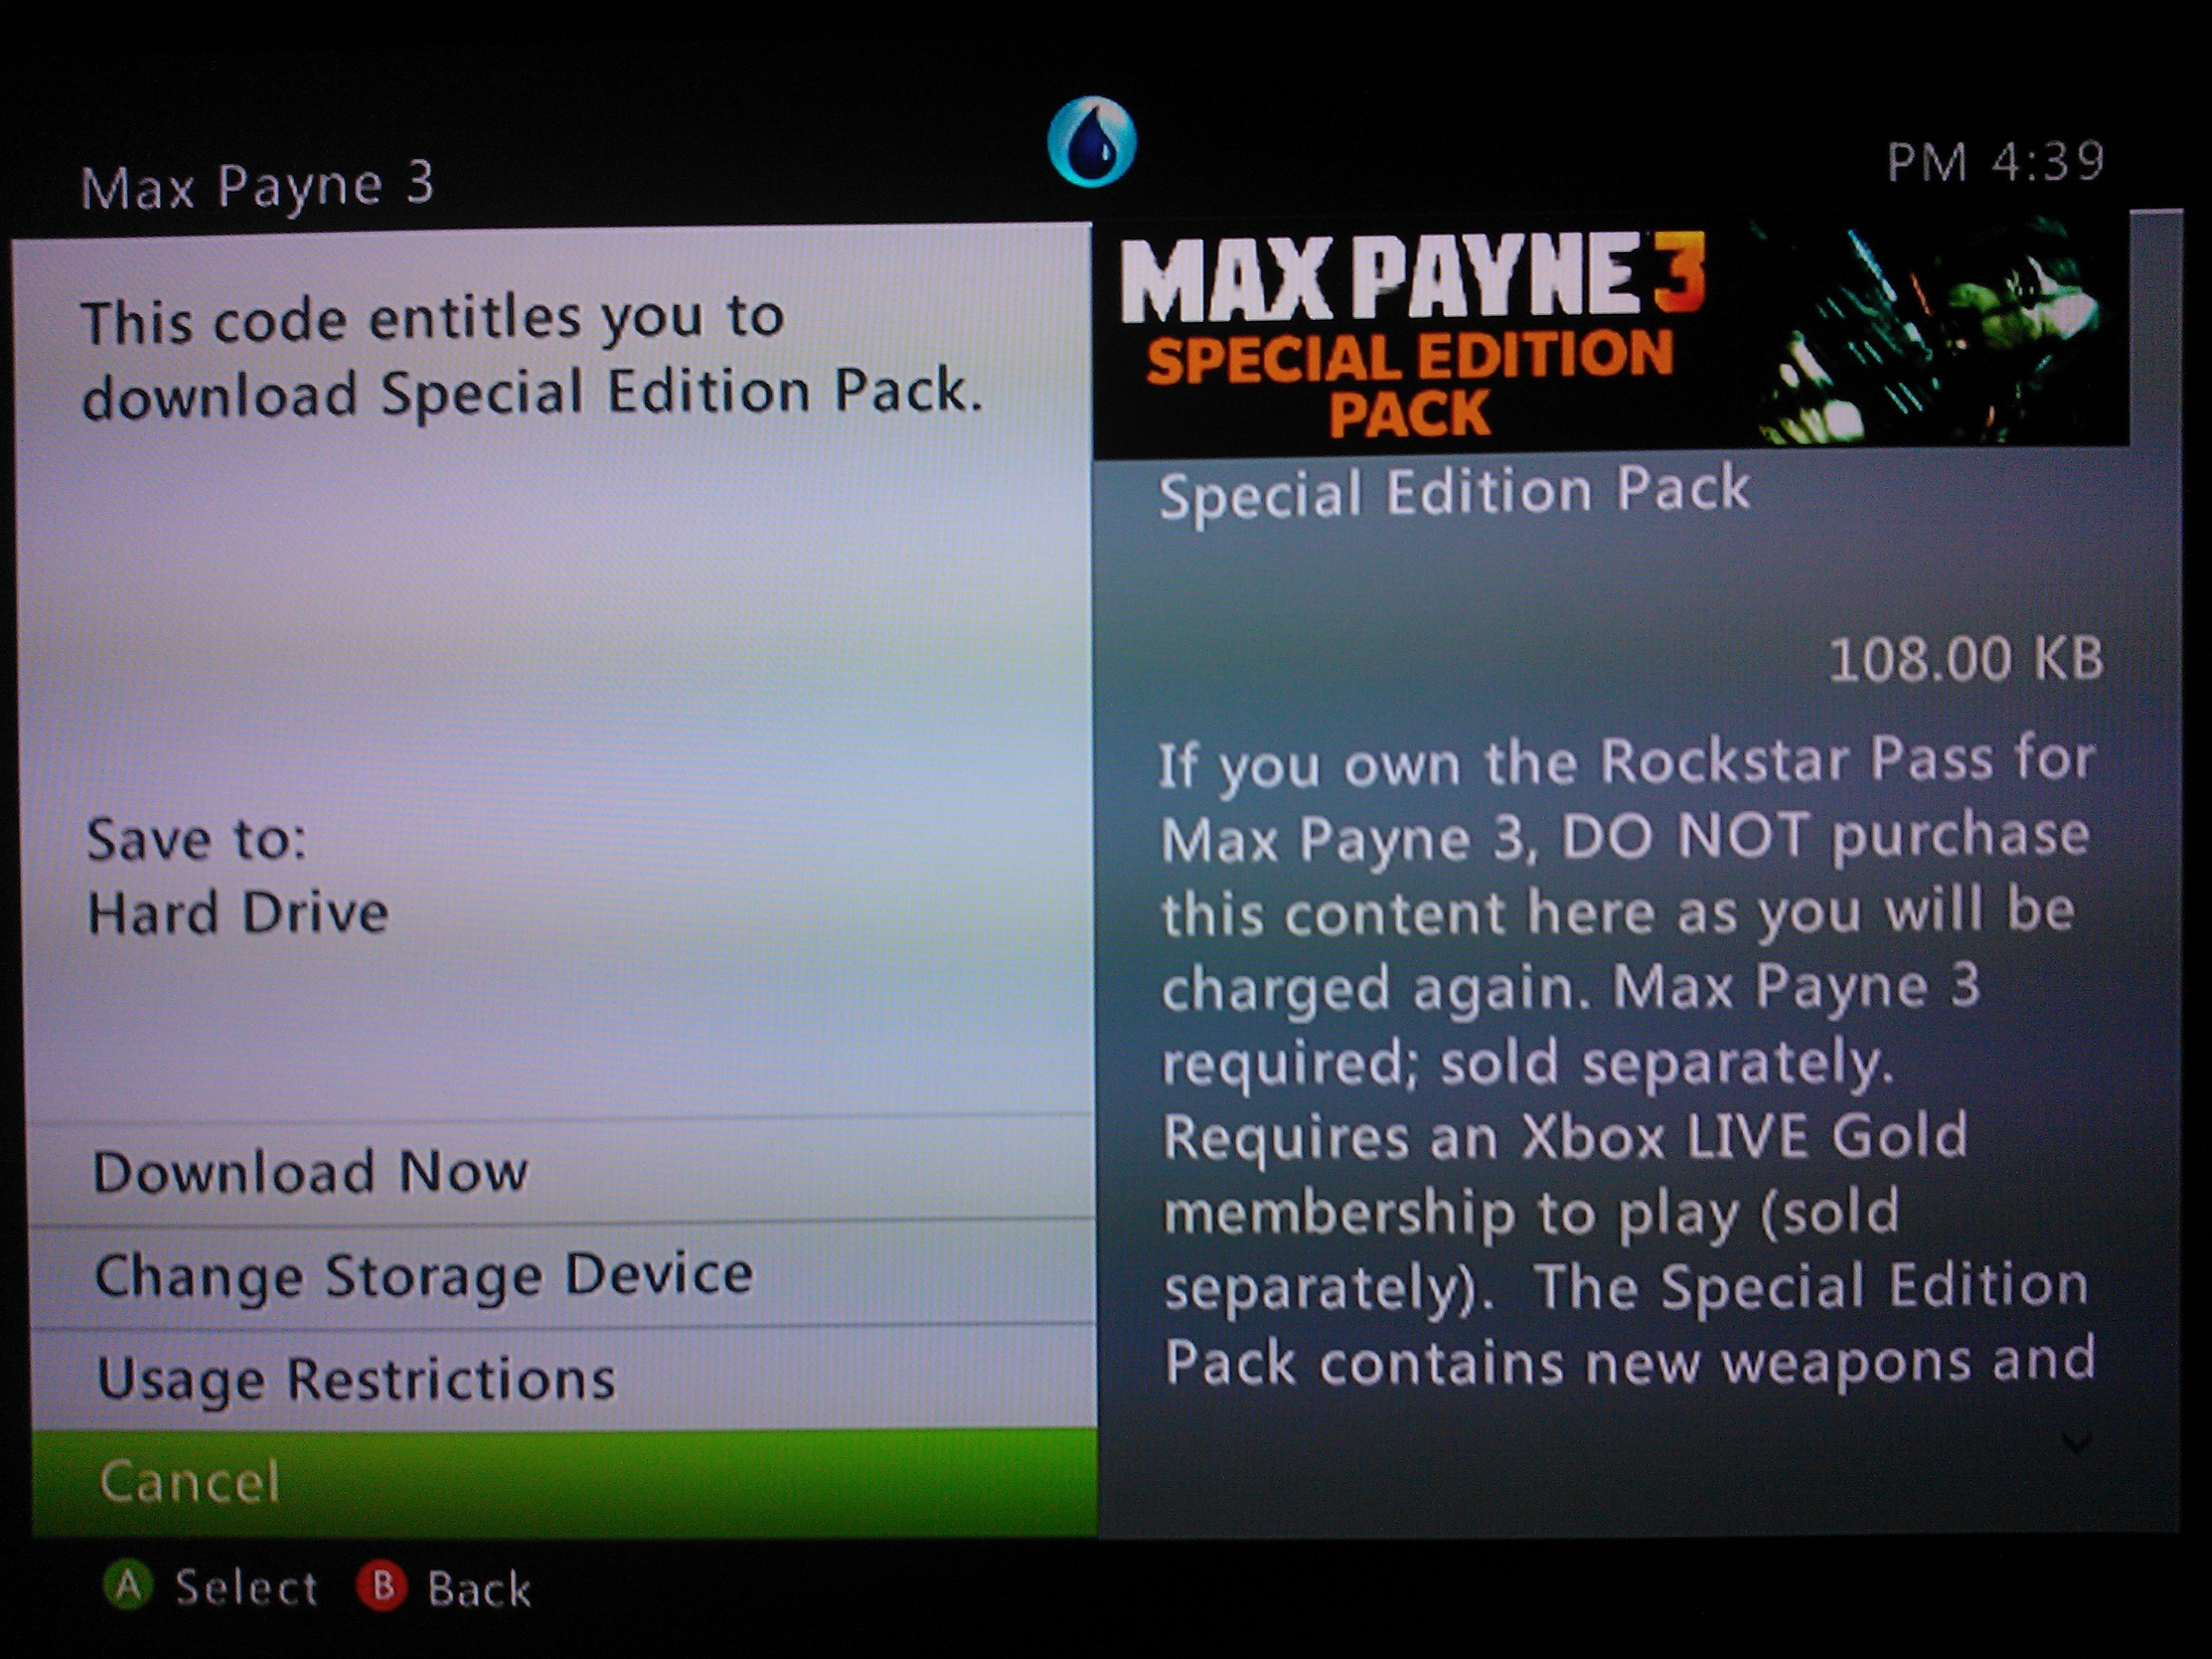 max payne 3 activation key generator